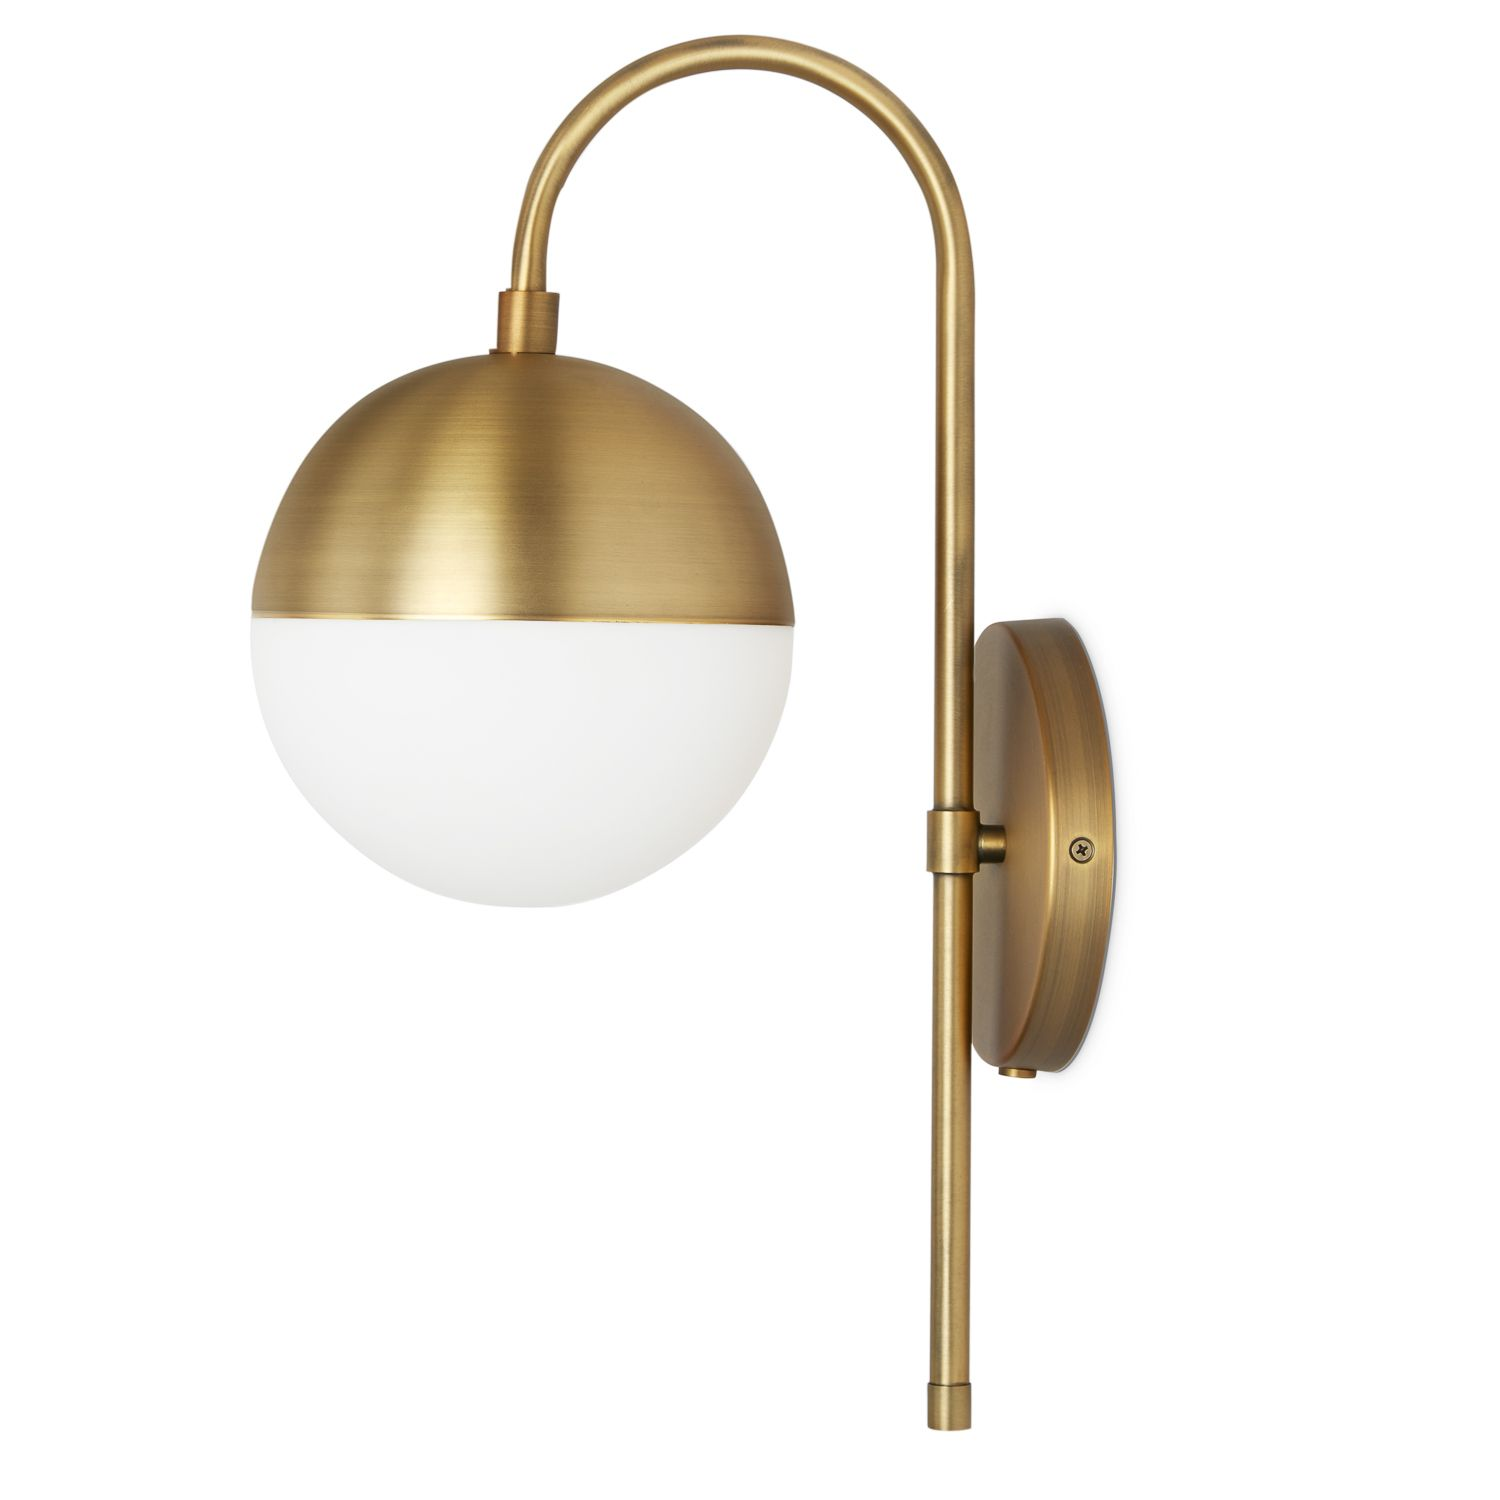 Hooded Led Wall Ground Light: Powell Wall Sconce With Hooded White Globe, Bronze